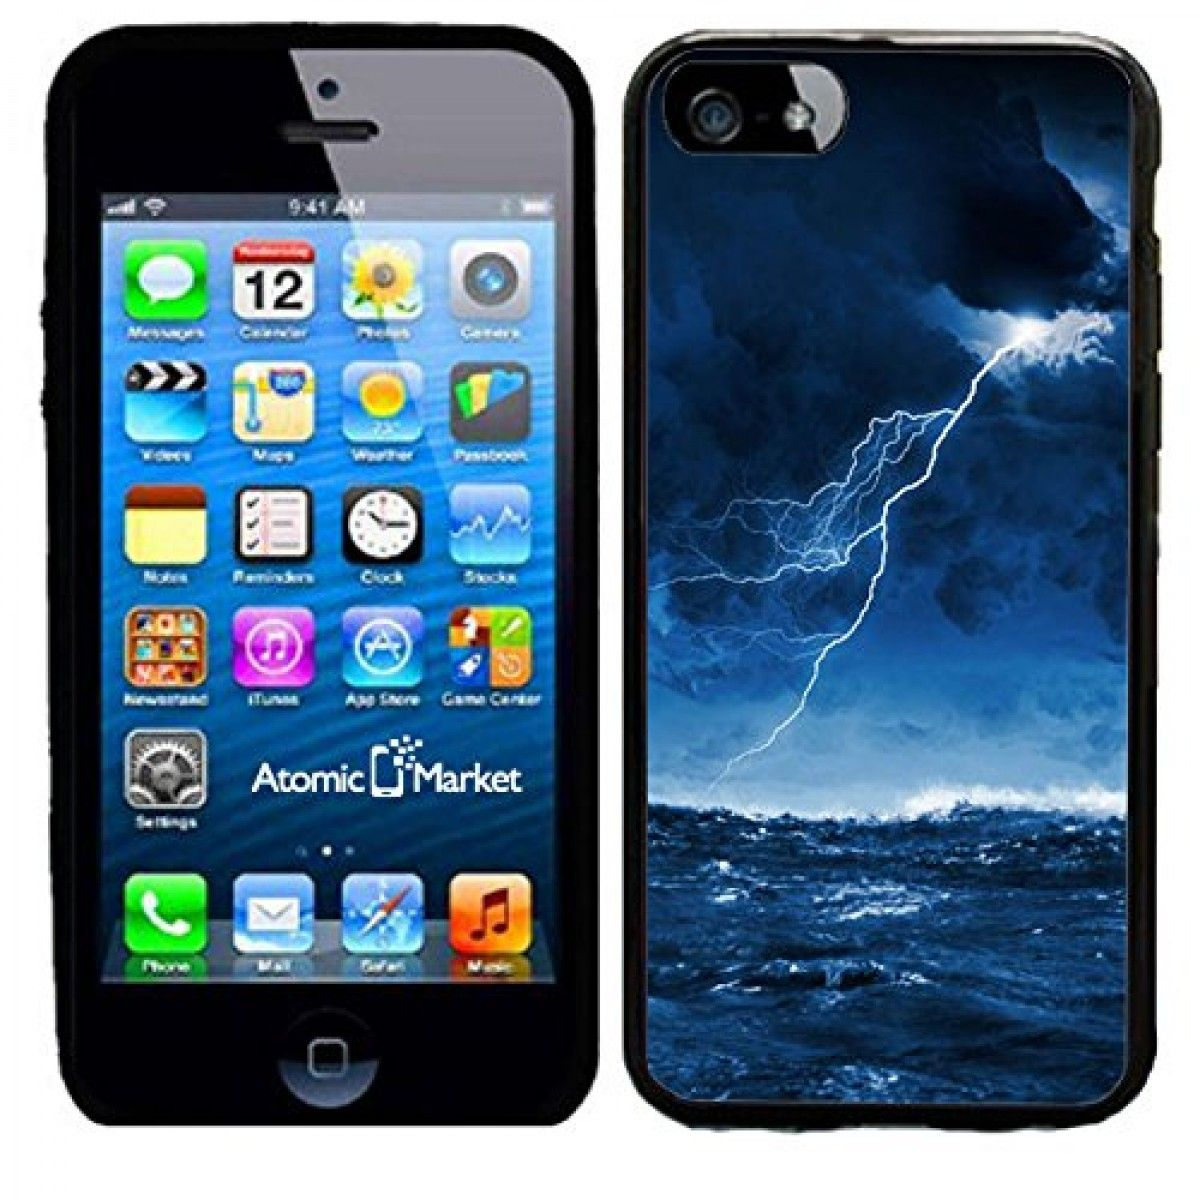 IP6 Ocean Storm With Lighting Bolt For Iphone 6 Case Cover By Atomic